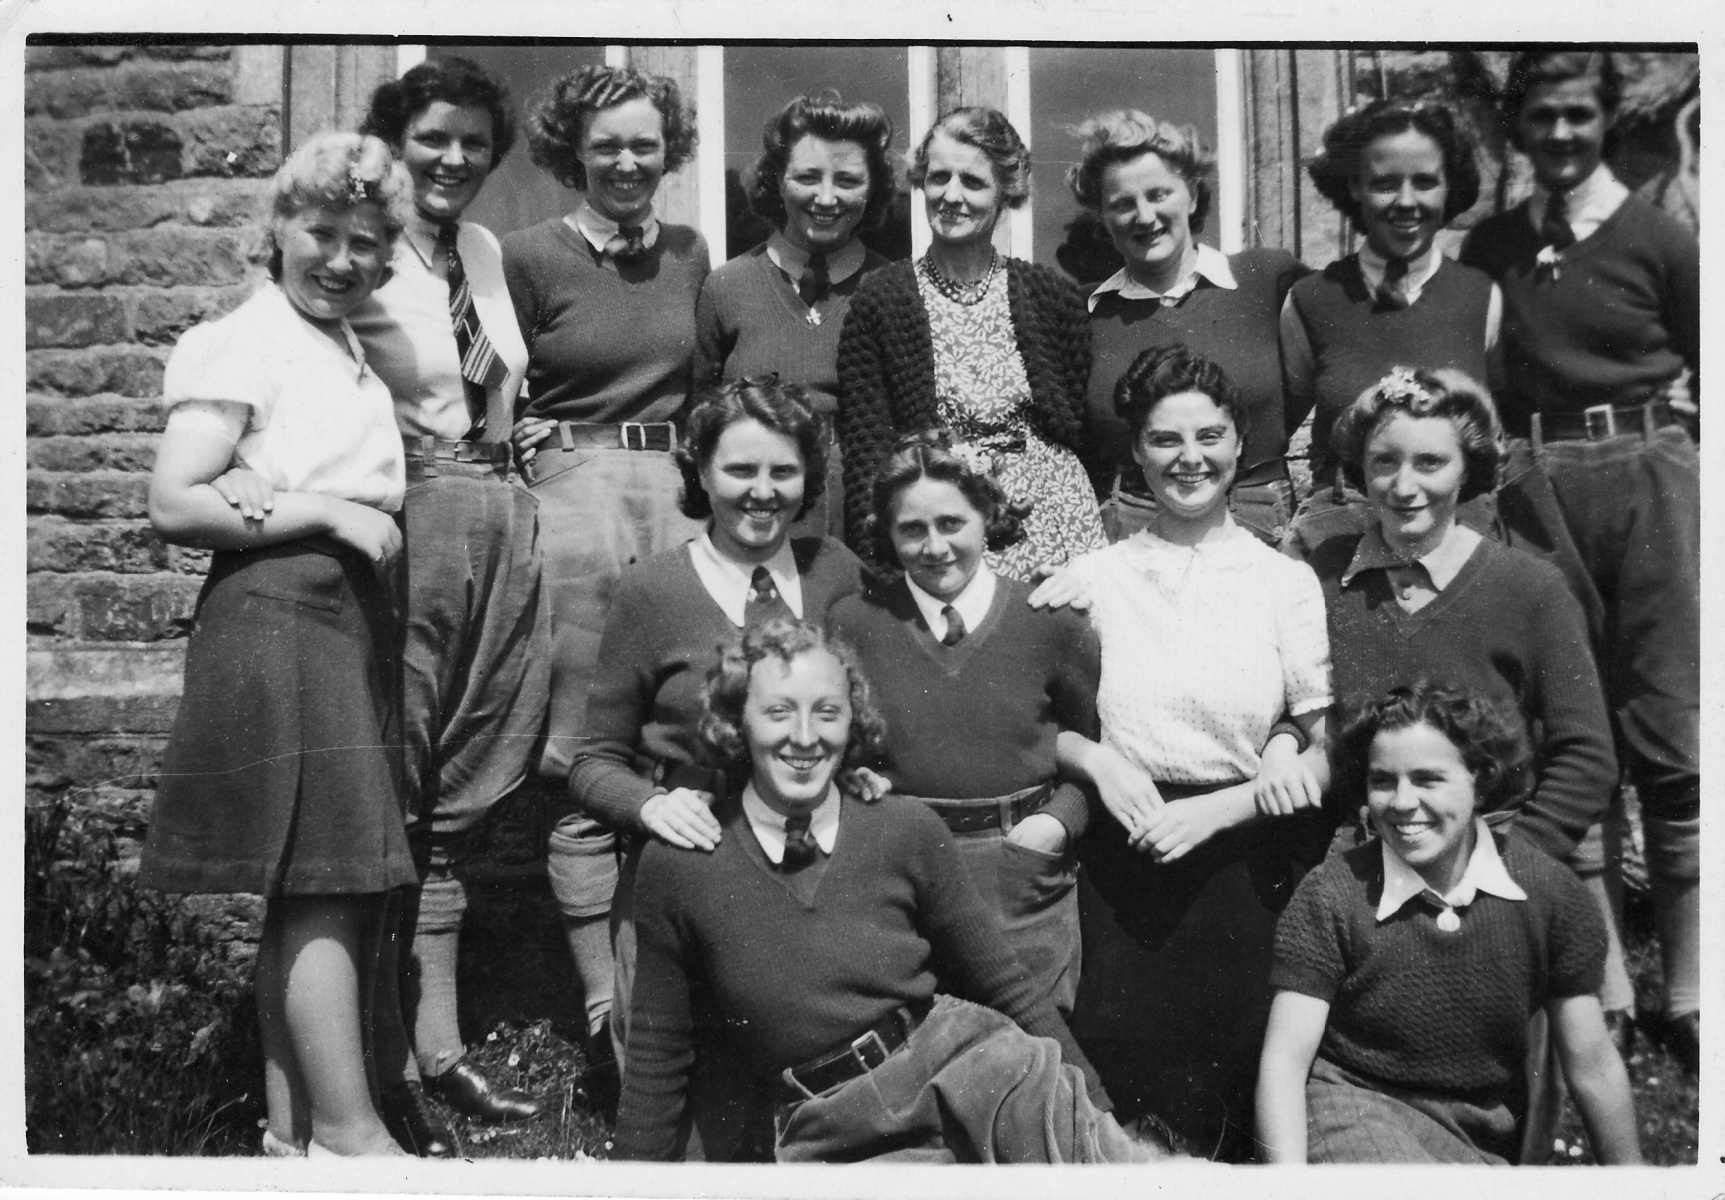 1942. '13' 'Land Tanks' and the Matron. W.L.U Hostel. Middle row, left, Olive, Elsie Bradshaw nee Garvey, Gladys Siddall, ?. Front row, centre, Ivy Dickinson.